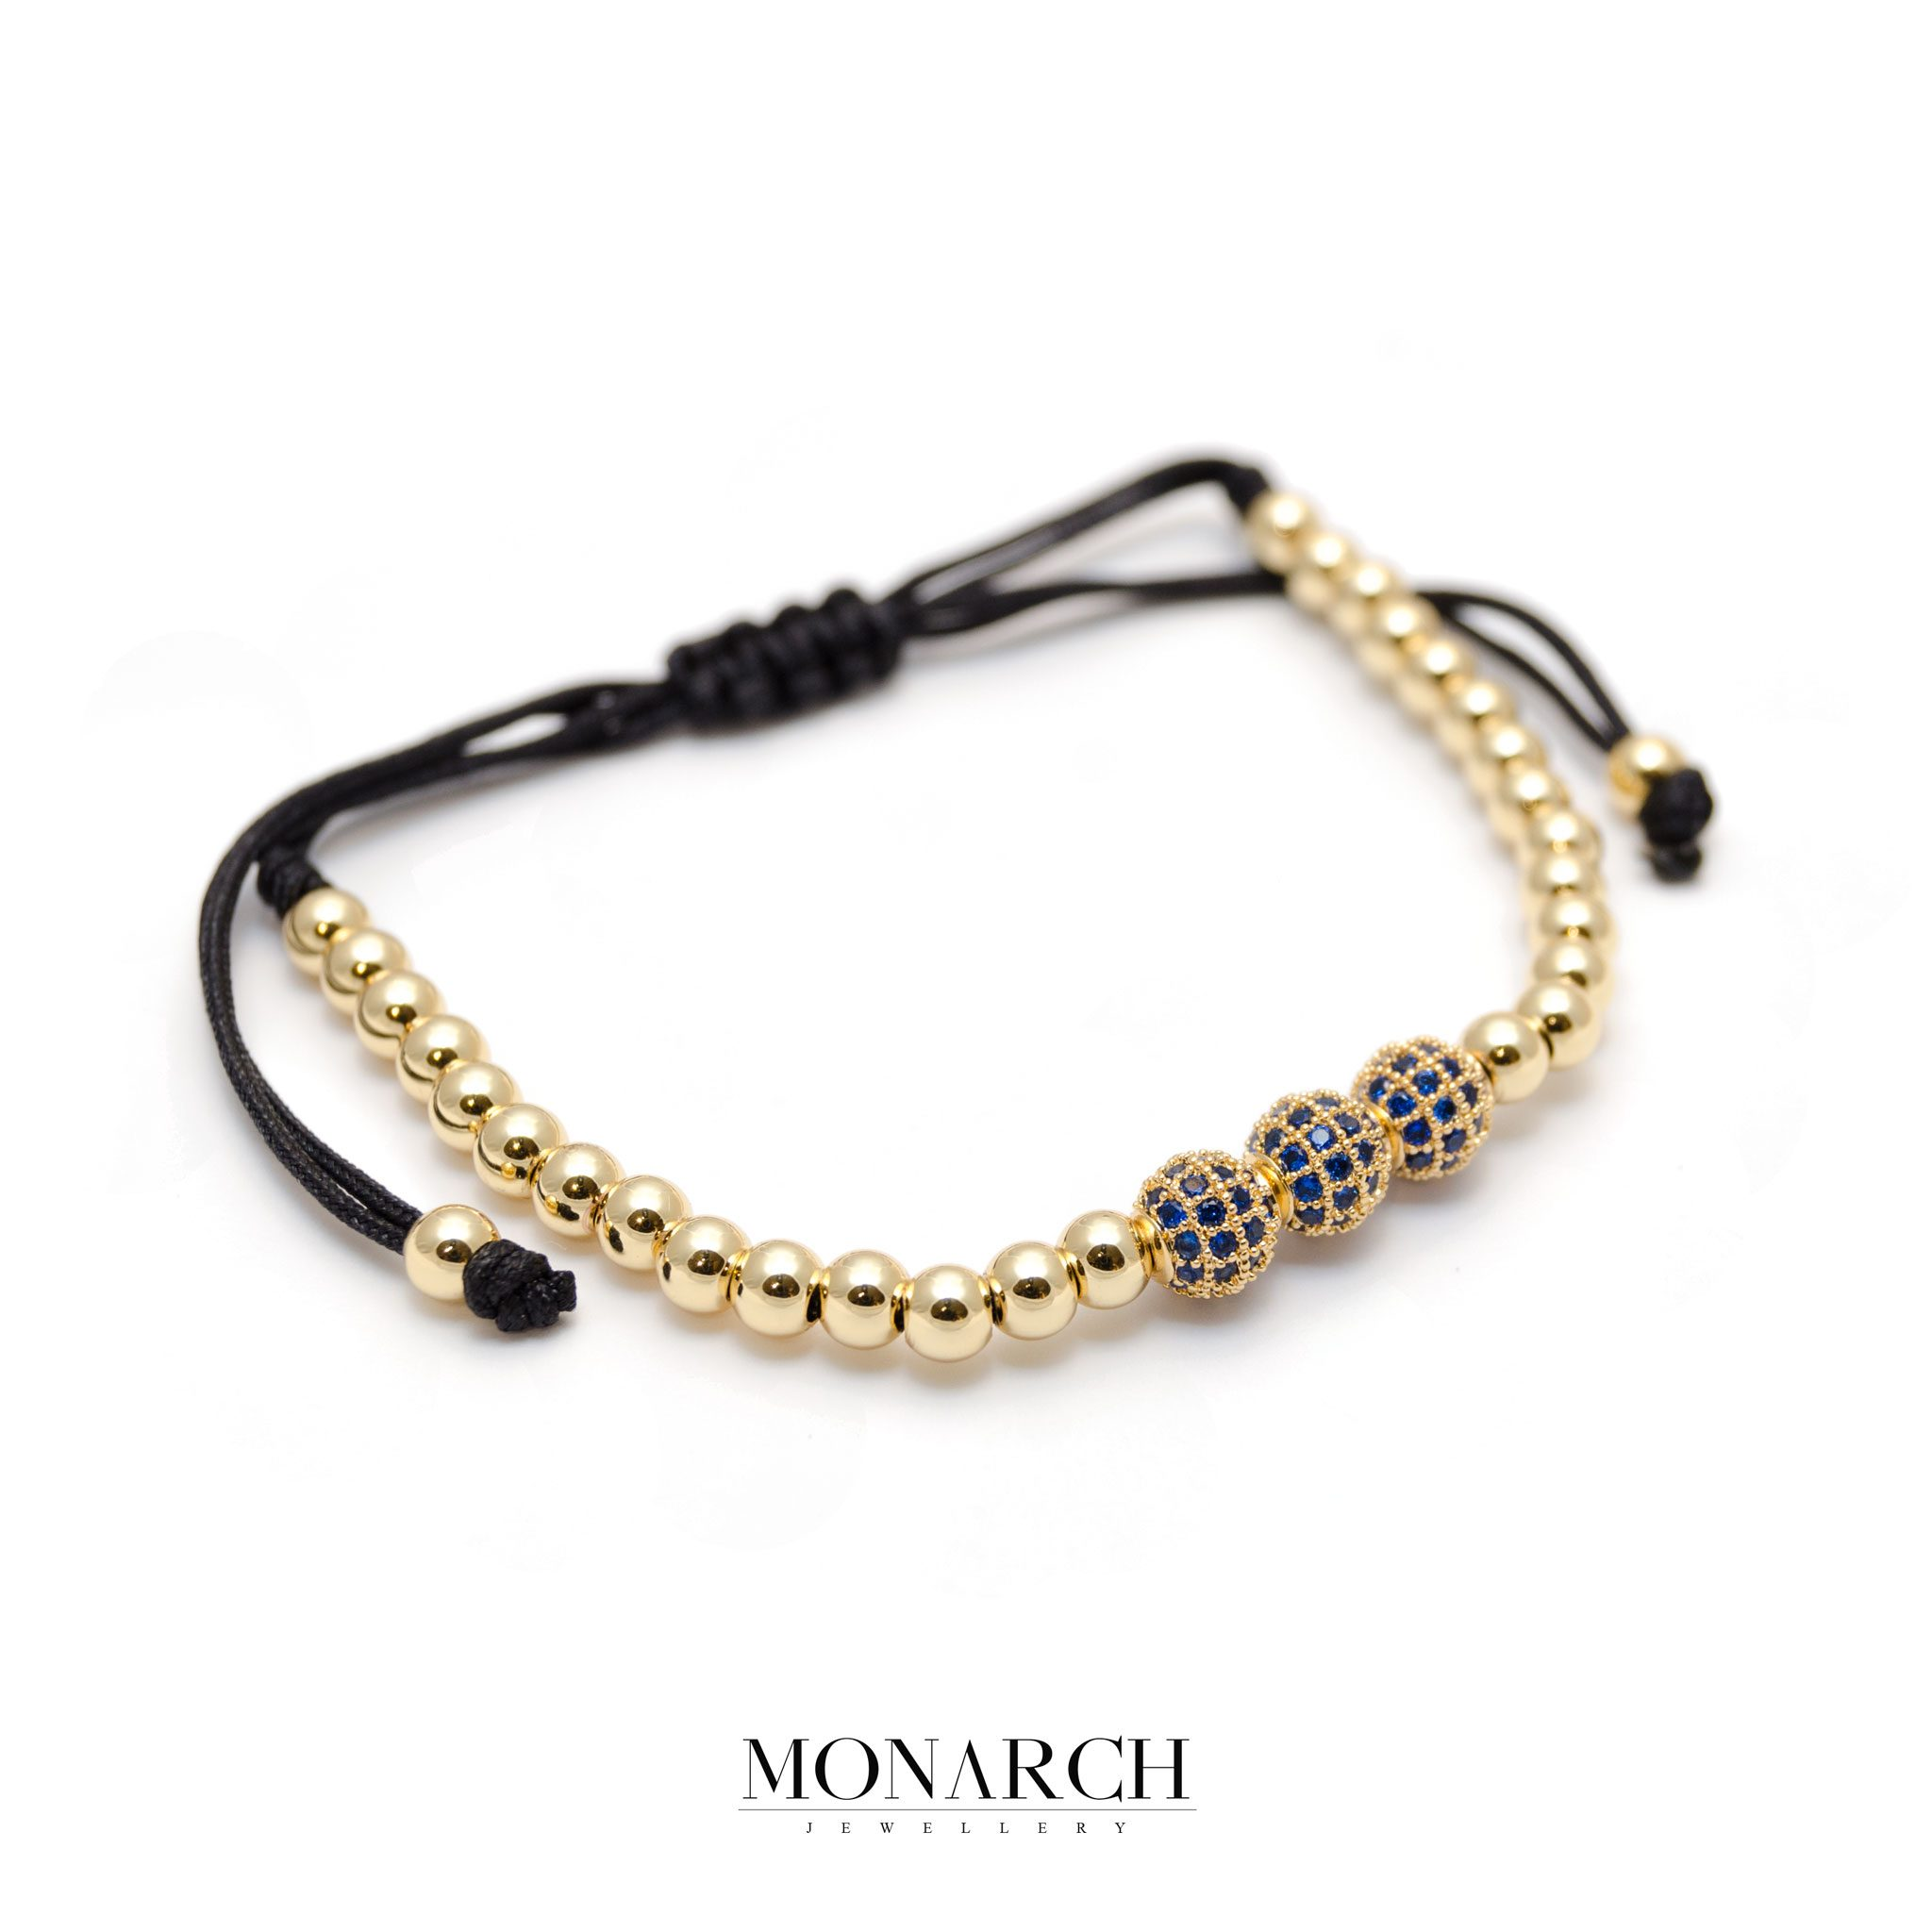 Monarch Jewellery 24K Gold Azur Trio Bead Macrame Bracelet